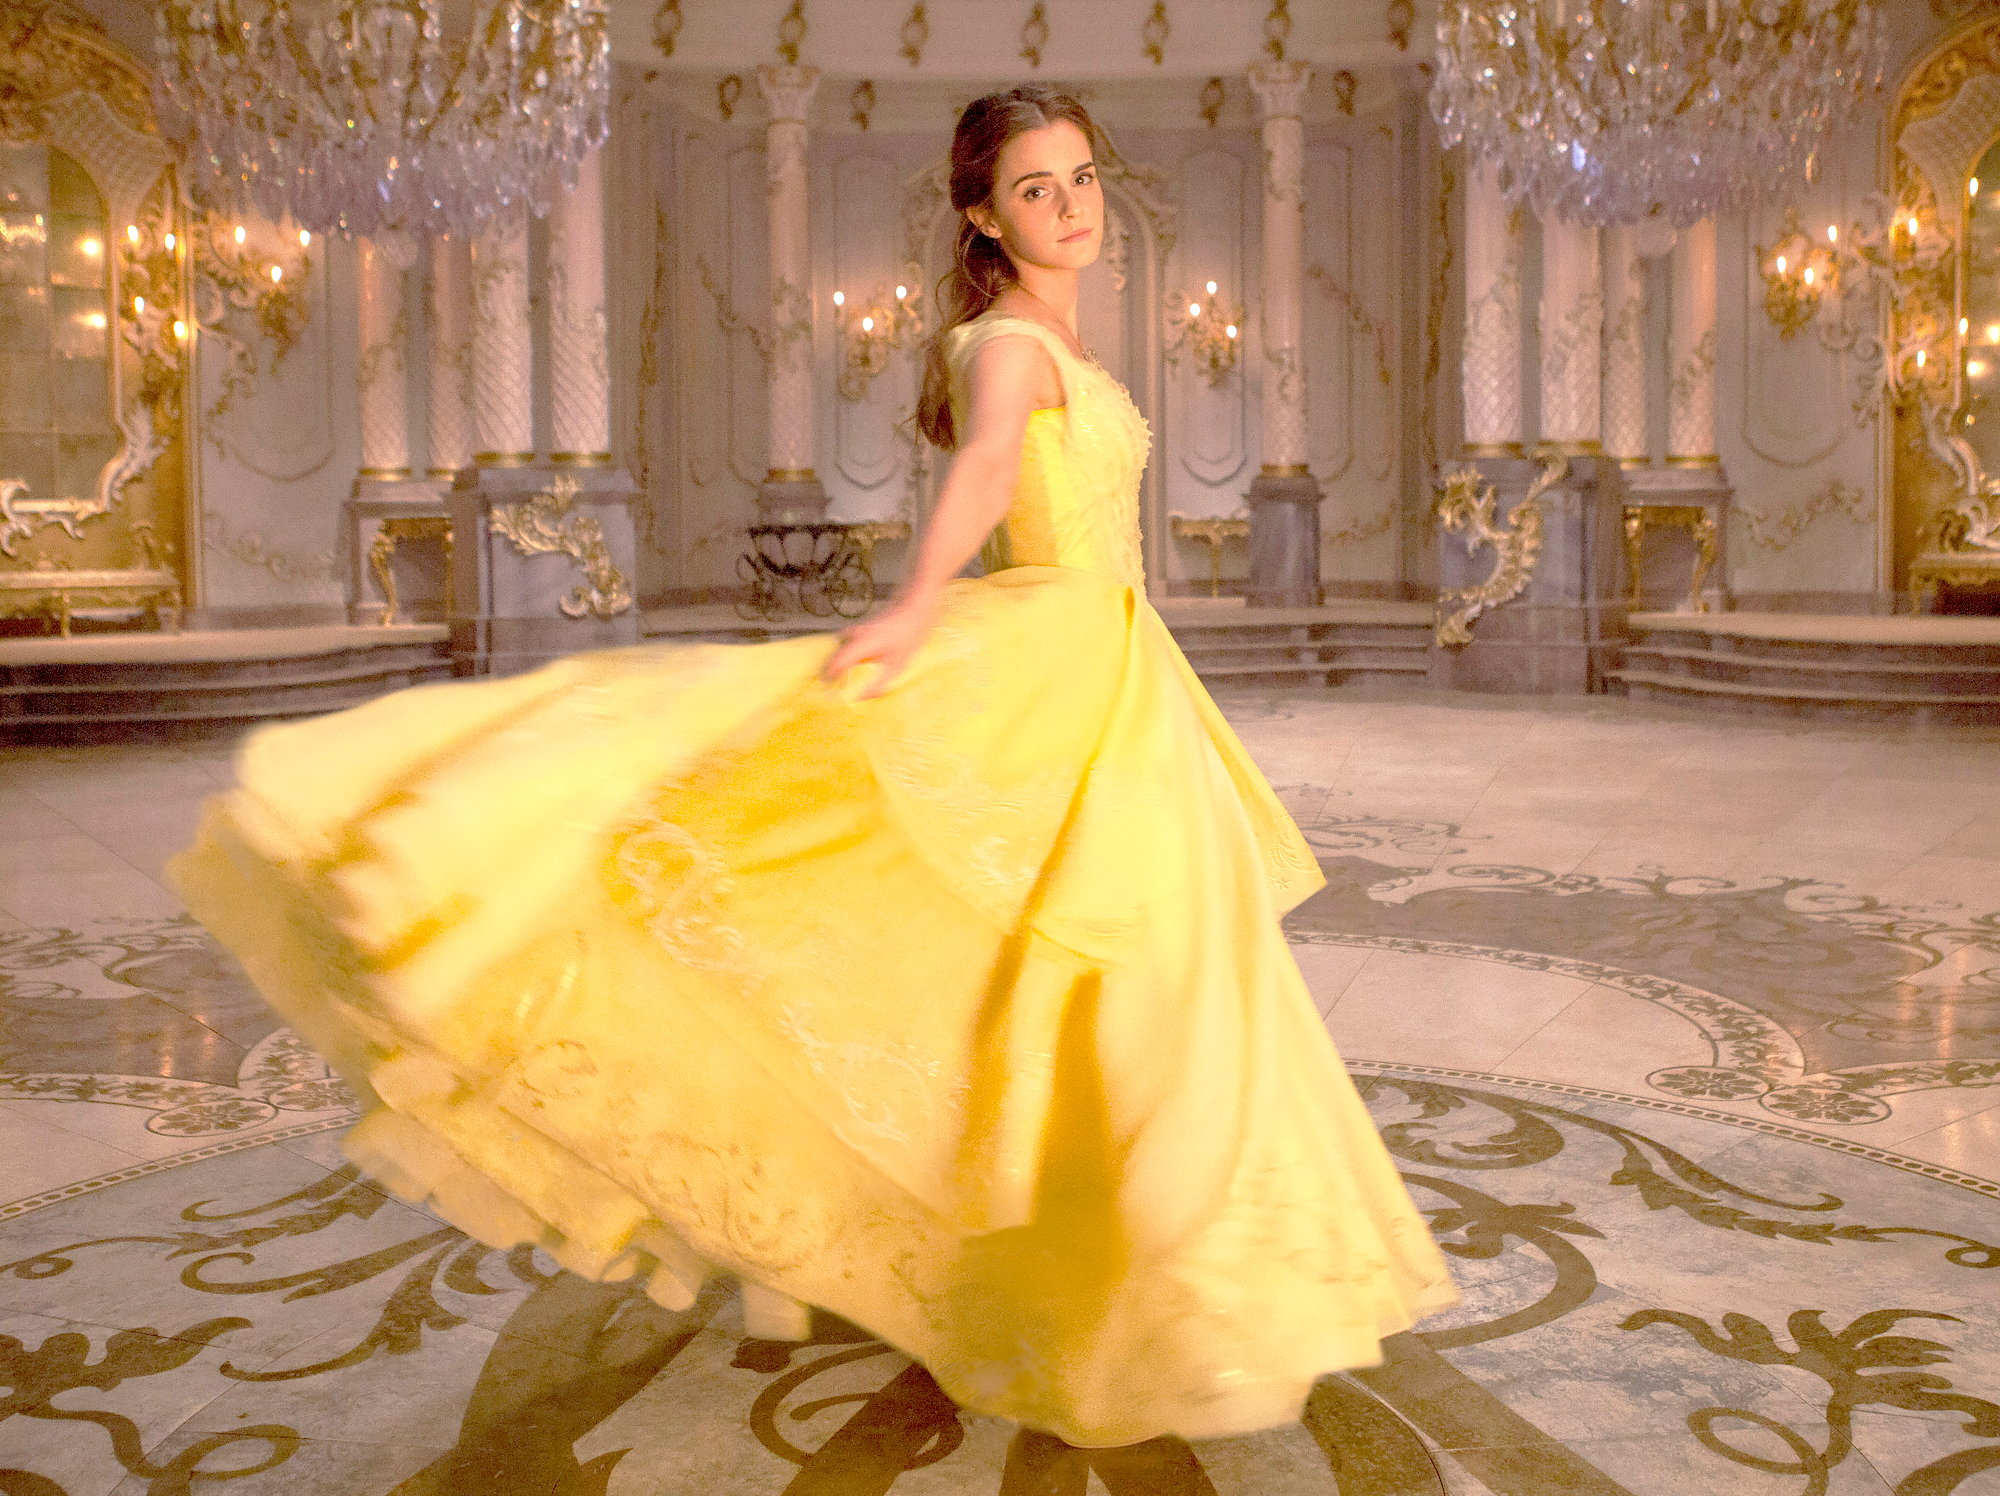 Emma-Watson-as-Belle - Watson set the bar for live-action Disney princesses in 2017 when she played a flawless rendition of the beautiful and book smart Belle.